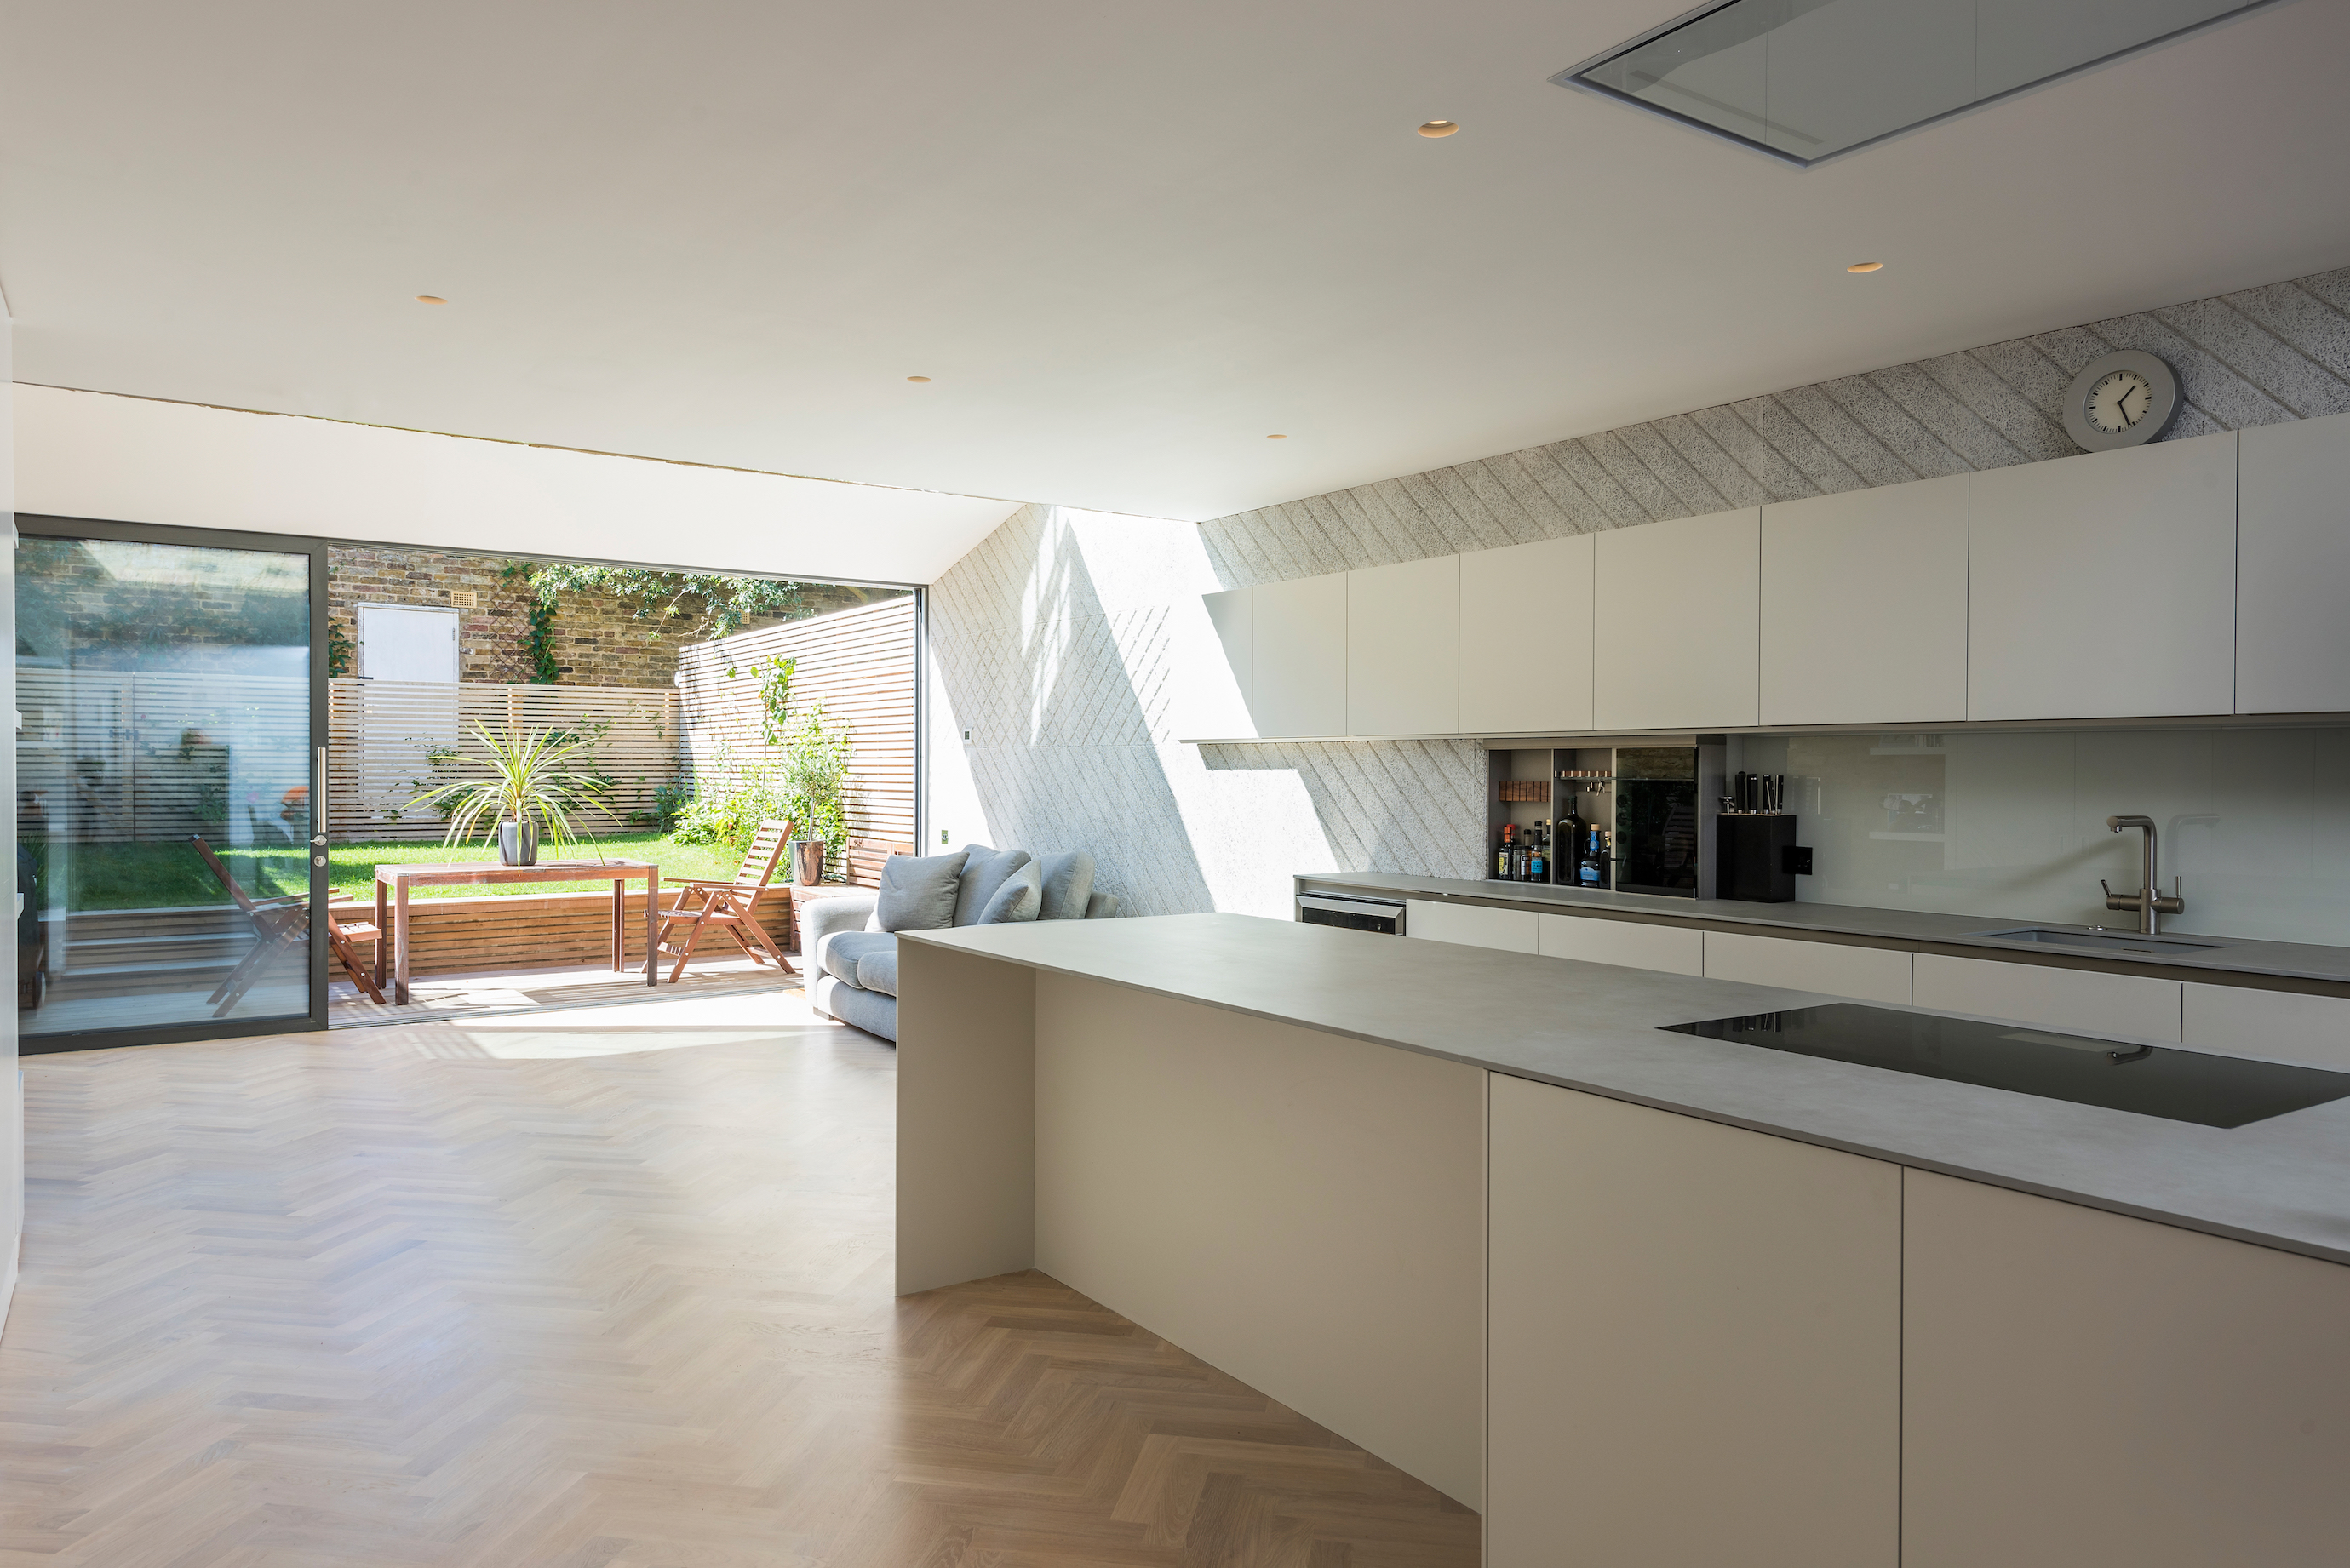 </p> <p>Find your ideal home design pro on designfor-me.com - get matched and see who's interested in your home project. Click image to see more inspiration from our design pros</p> <p>Design by Nick, architect from Tower Hamlets, London</p> <p>#architecture #homedesign #modernhomes #homeinspiration #kitchens #kitchendesign #kitcheninspiration #kitchenideas #kitchengoals #extensions #extensiondesign #extensioninspiration #extensionideas #houseextension </p> <p>